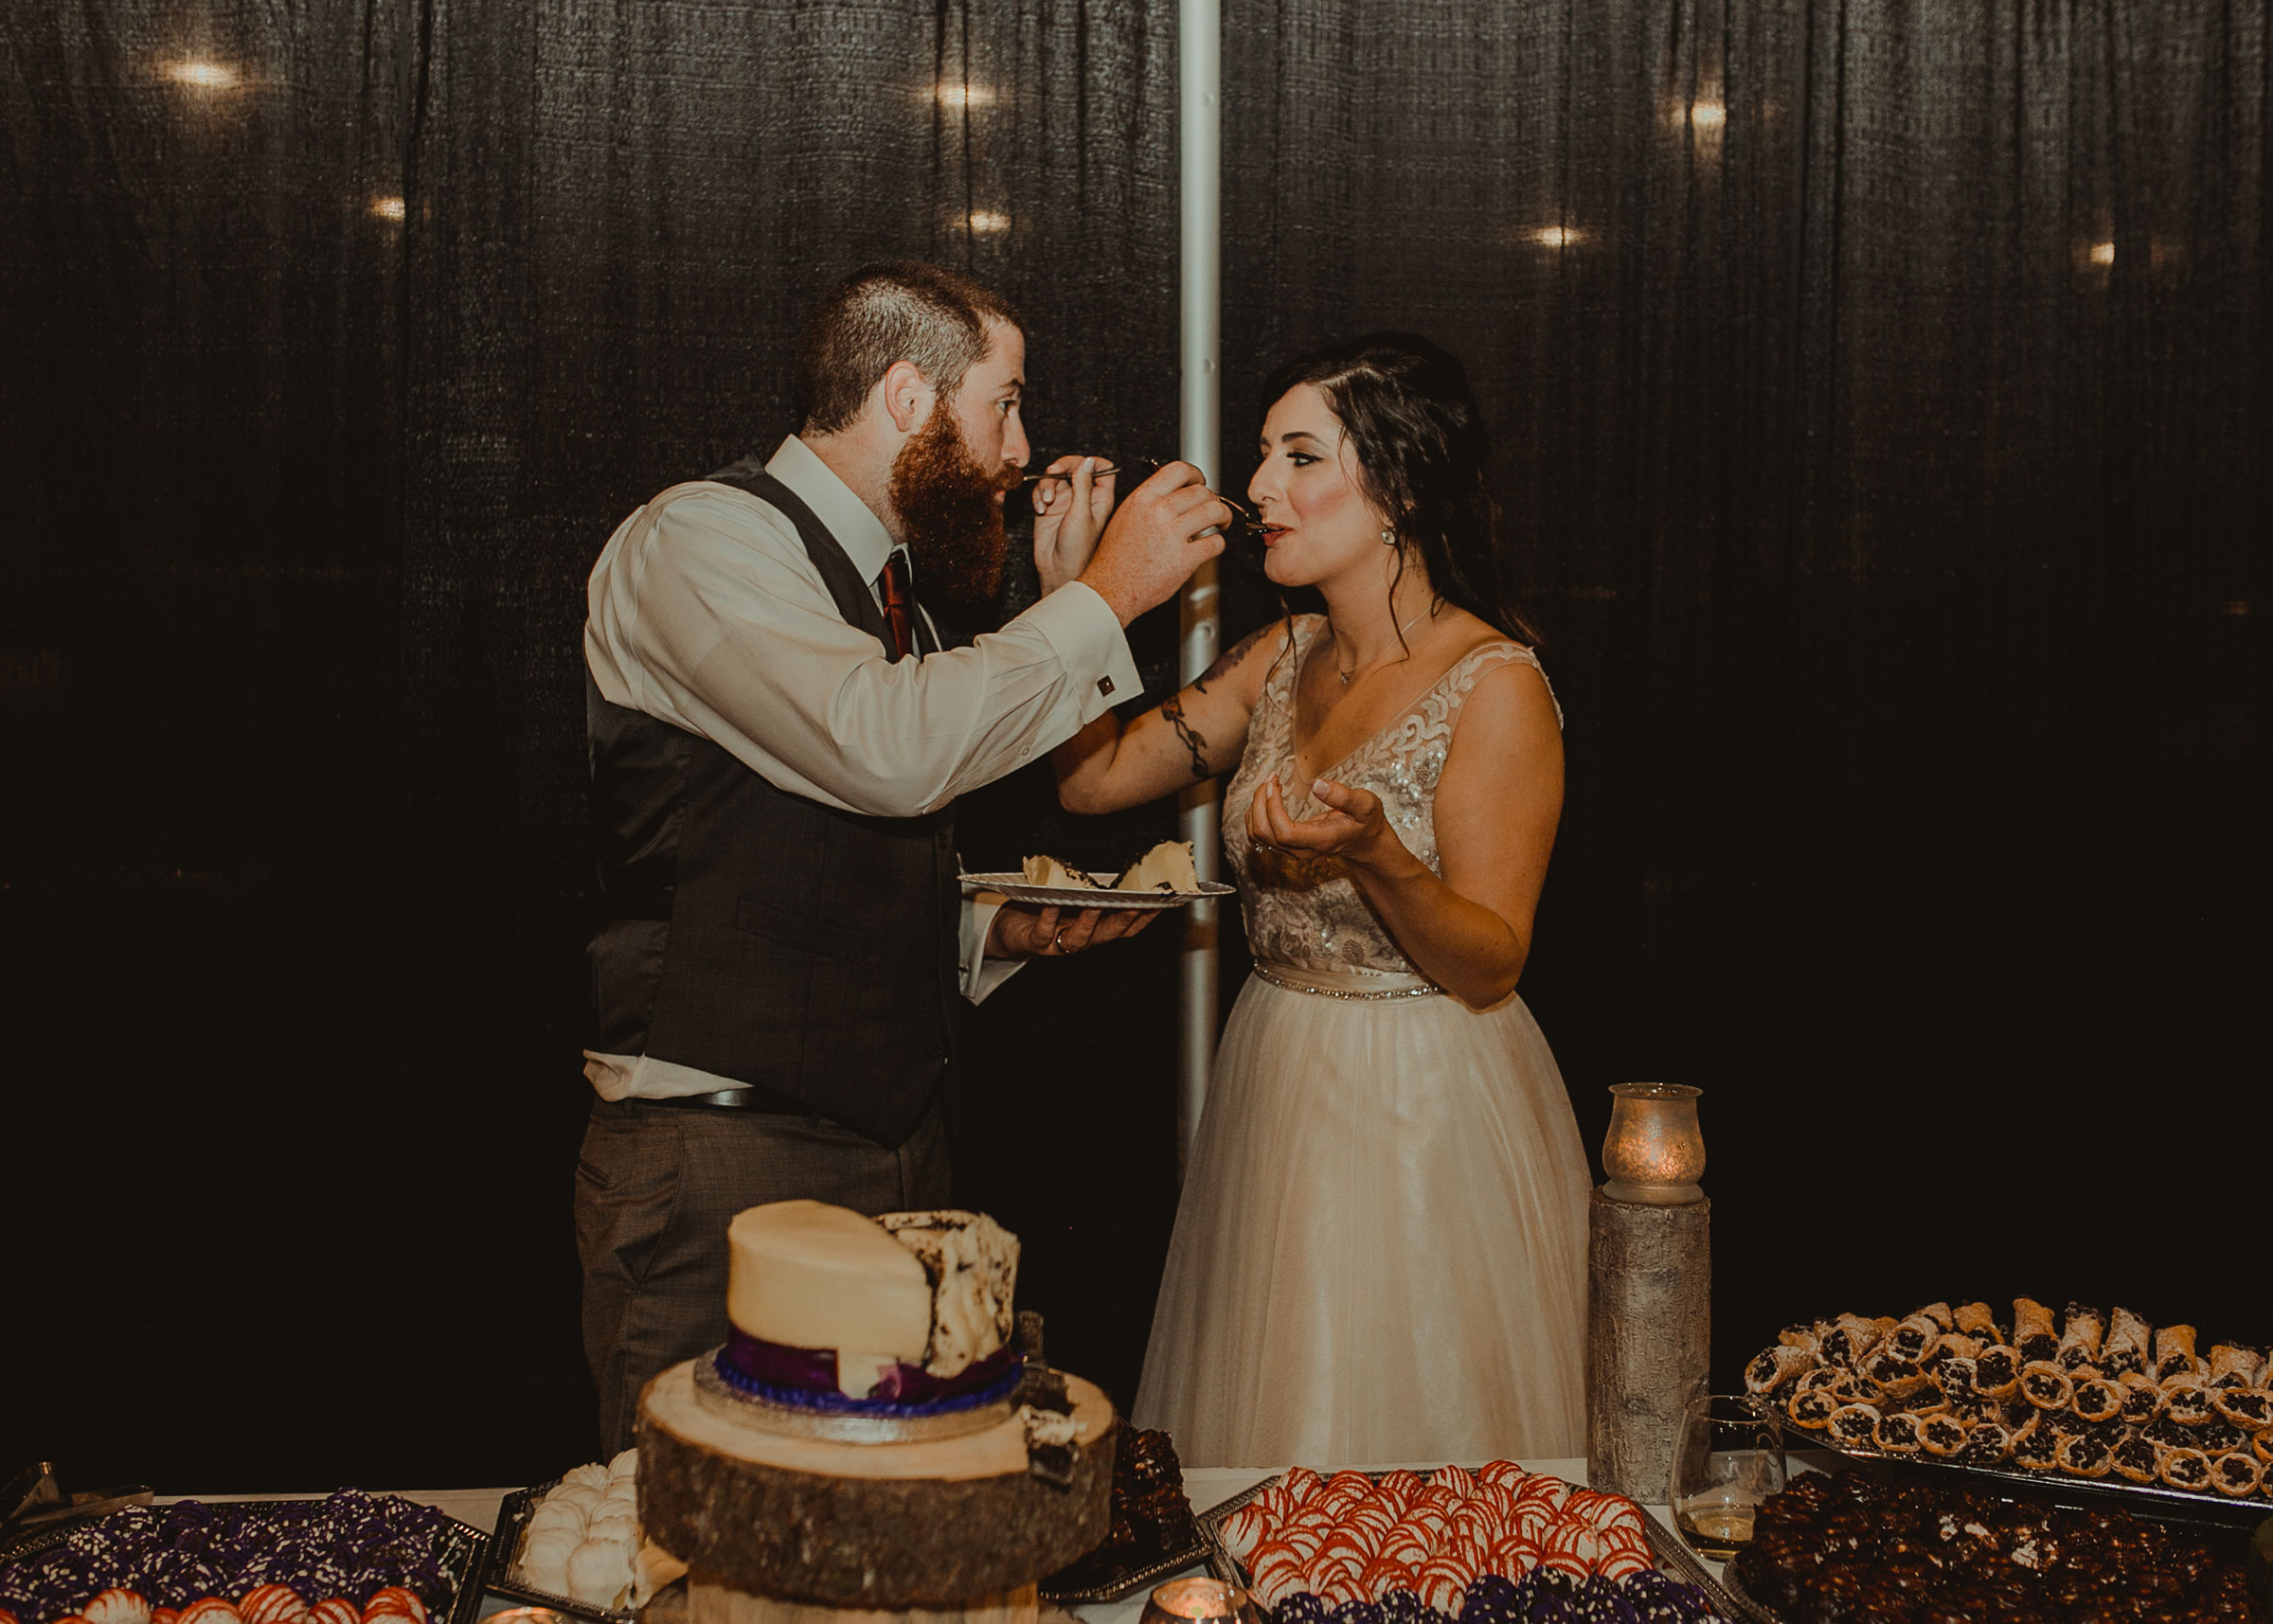 bride-groom-eating-cake-pella-plaza-desmoines-iowa-raelyn-ramey-photography.jpg